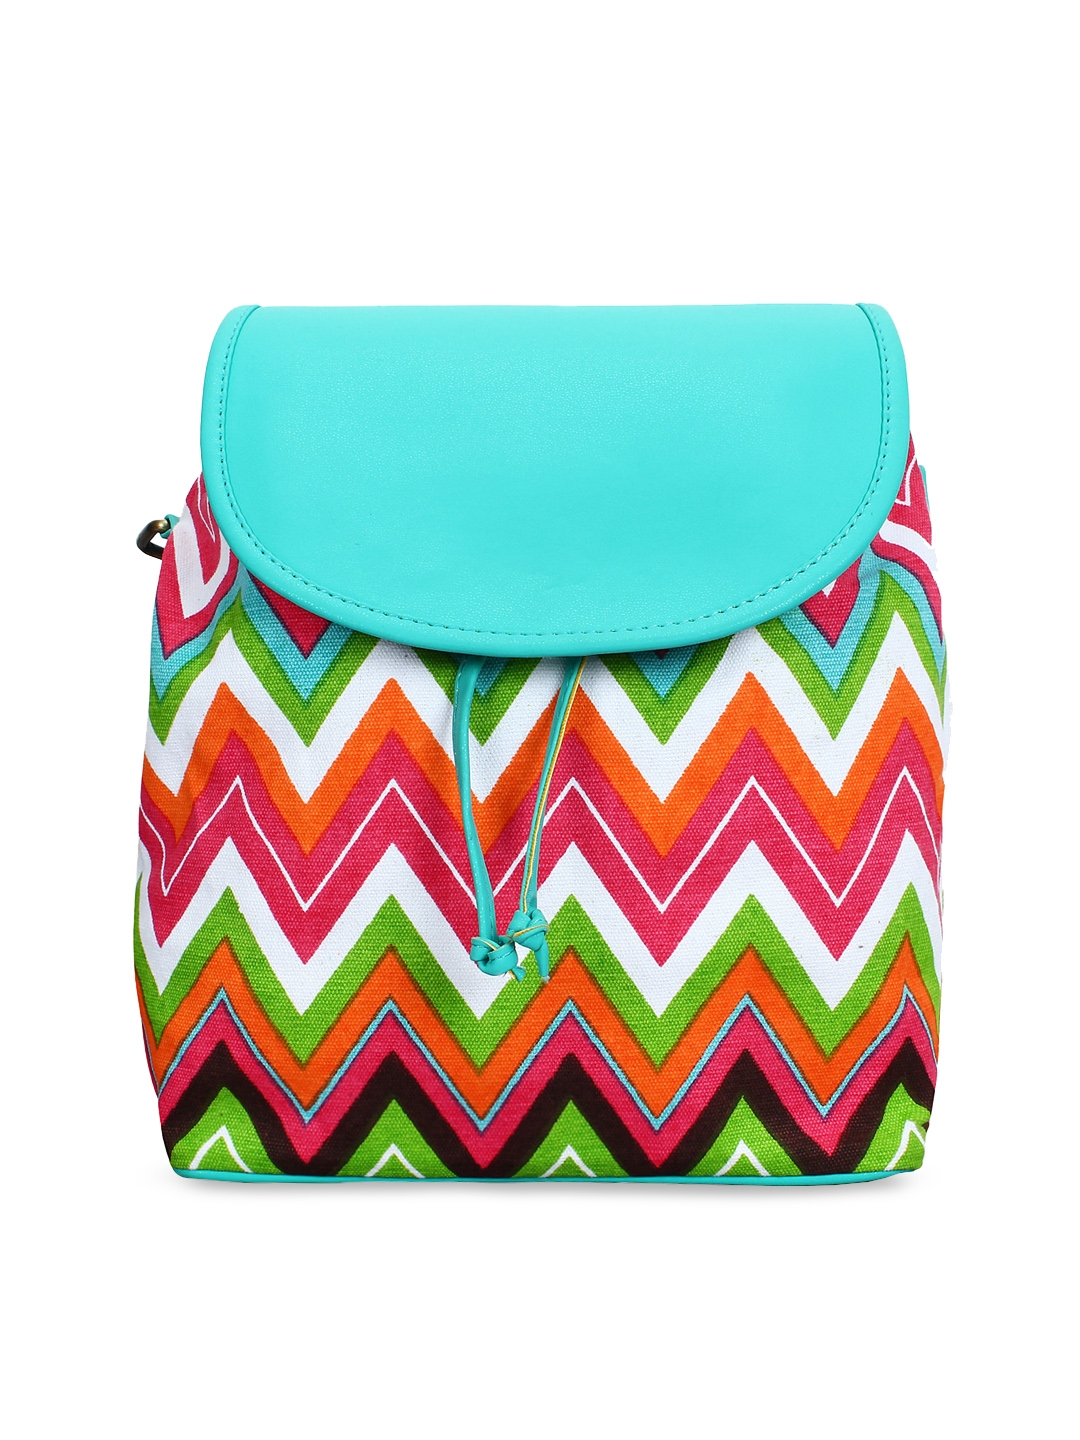 Lychee bags Multicoloured Striped Shoulder Bag